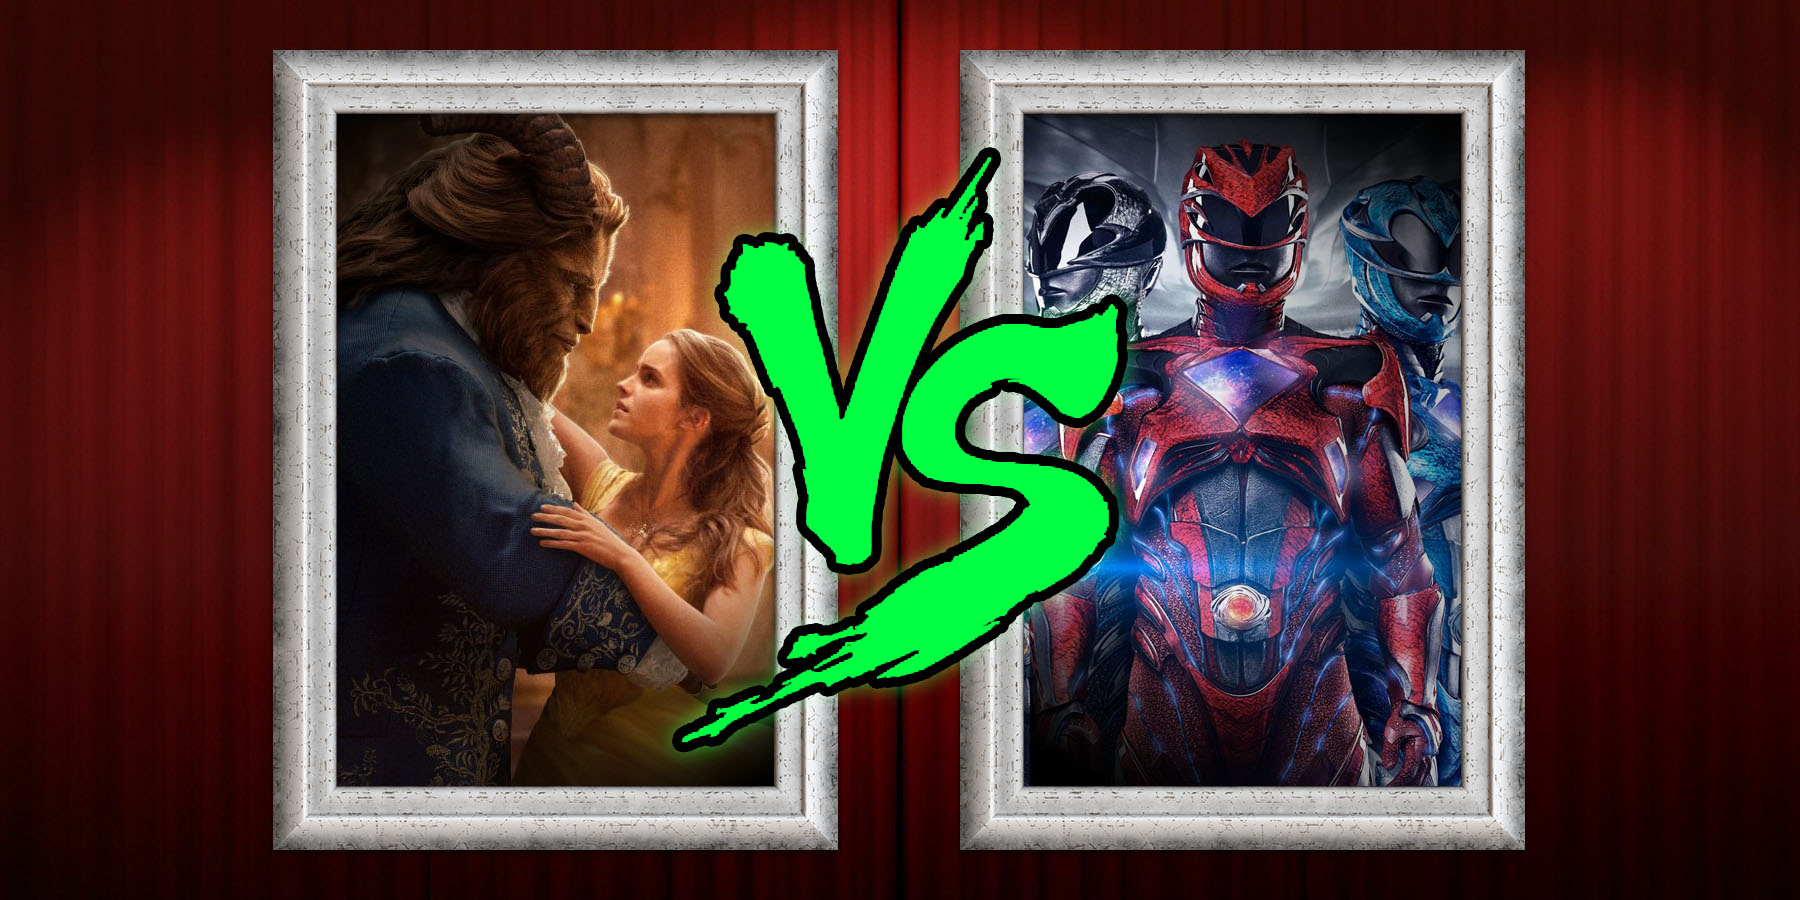 Box Office Prediction Power Rangers Vs Beauty And The Beast